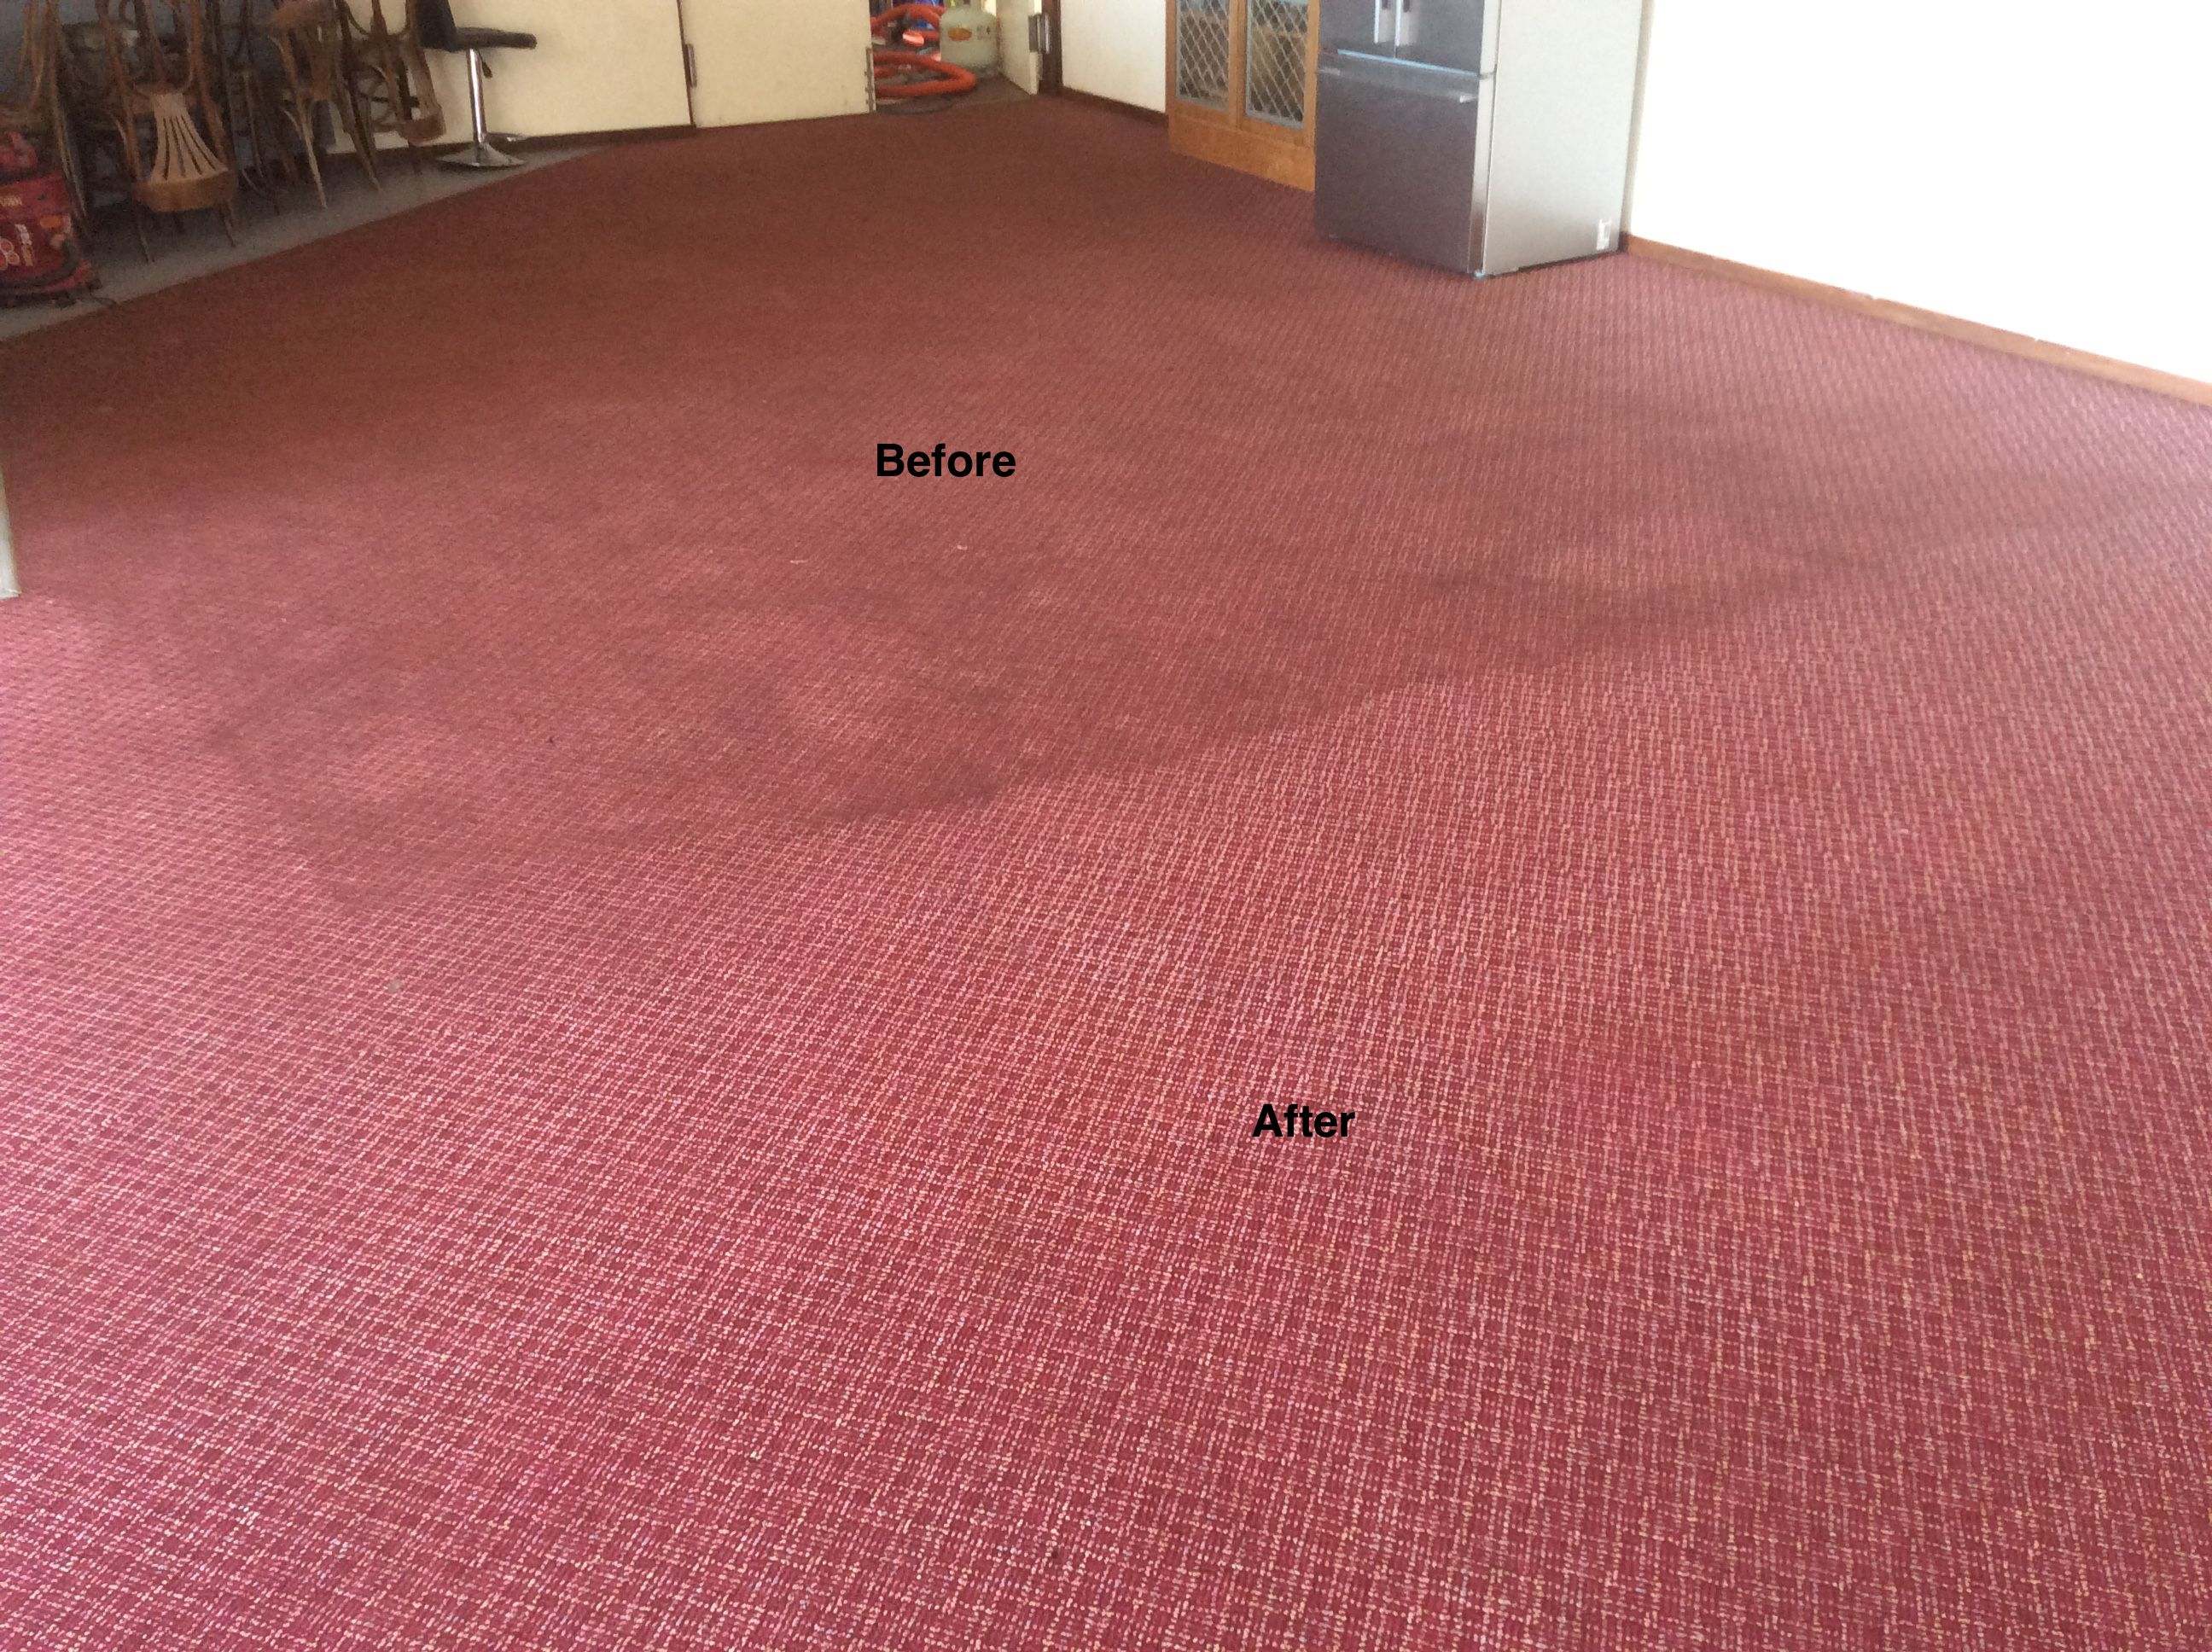 Commercial Carpet Cleaning, Perth, Western Australia. Heavy duty carpet steam cleaning a sporting club in Swanbourne.